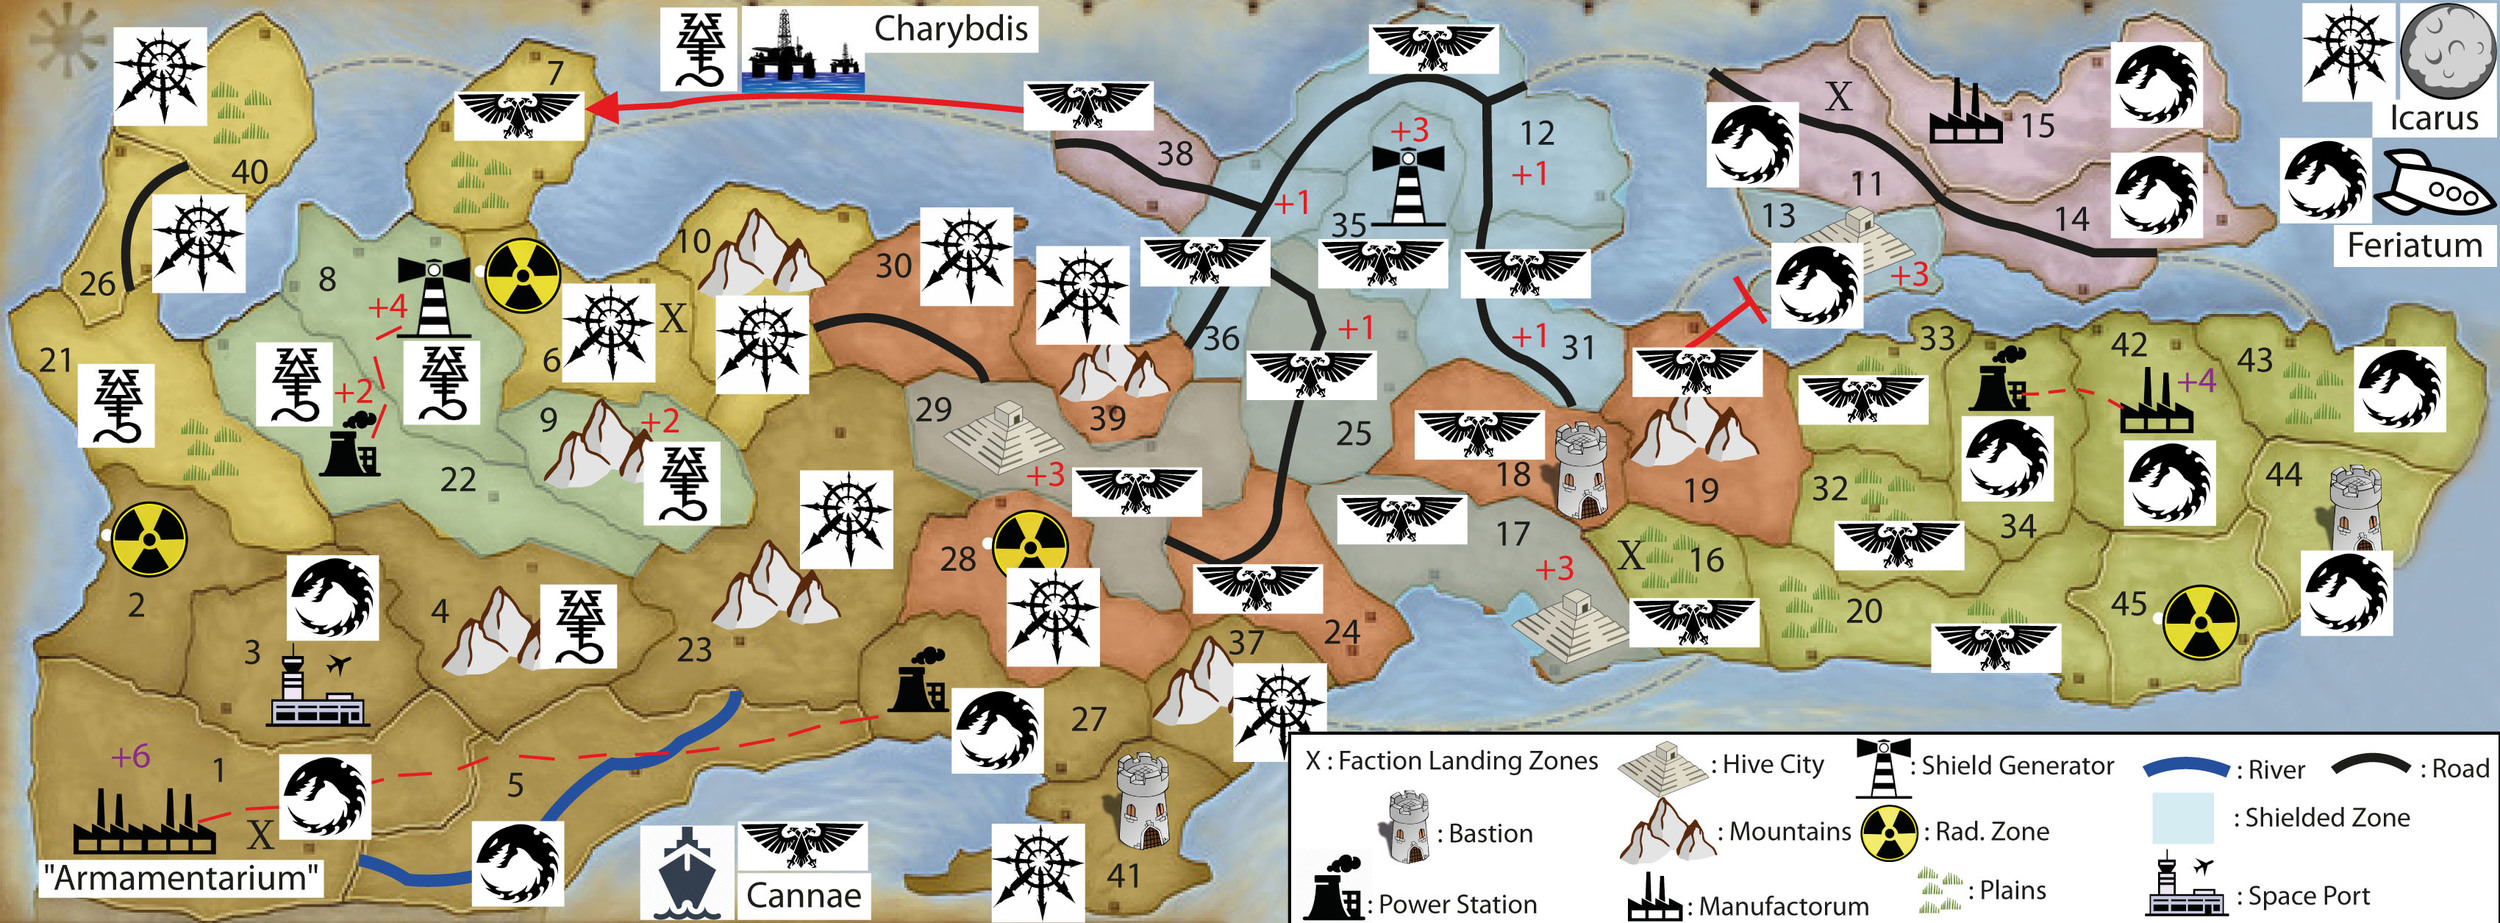 WINTER CAMPAIGN - END OF TURN 24